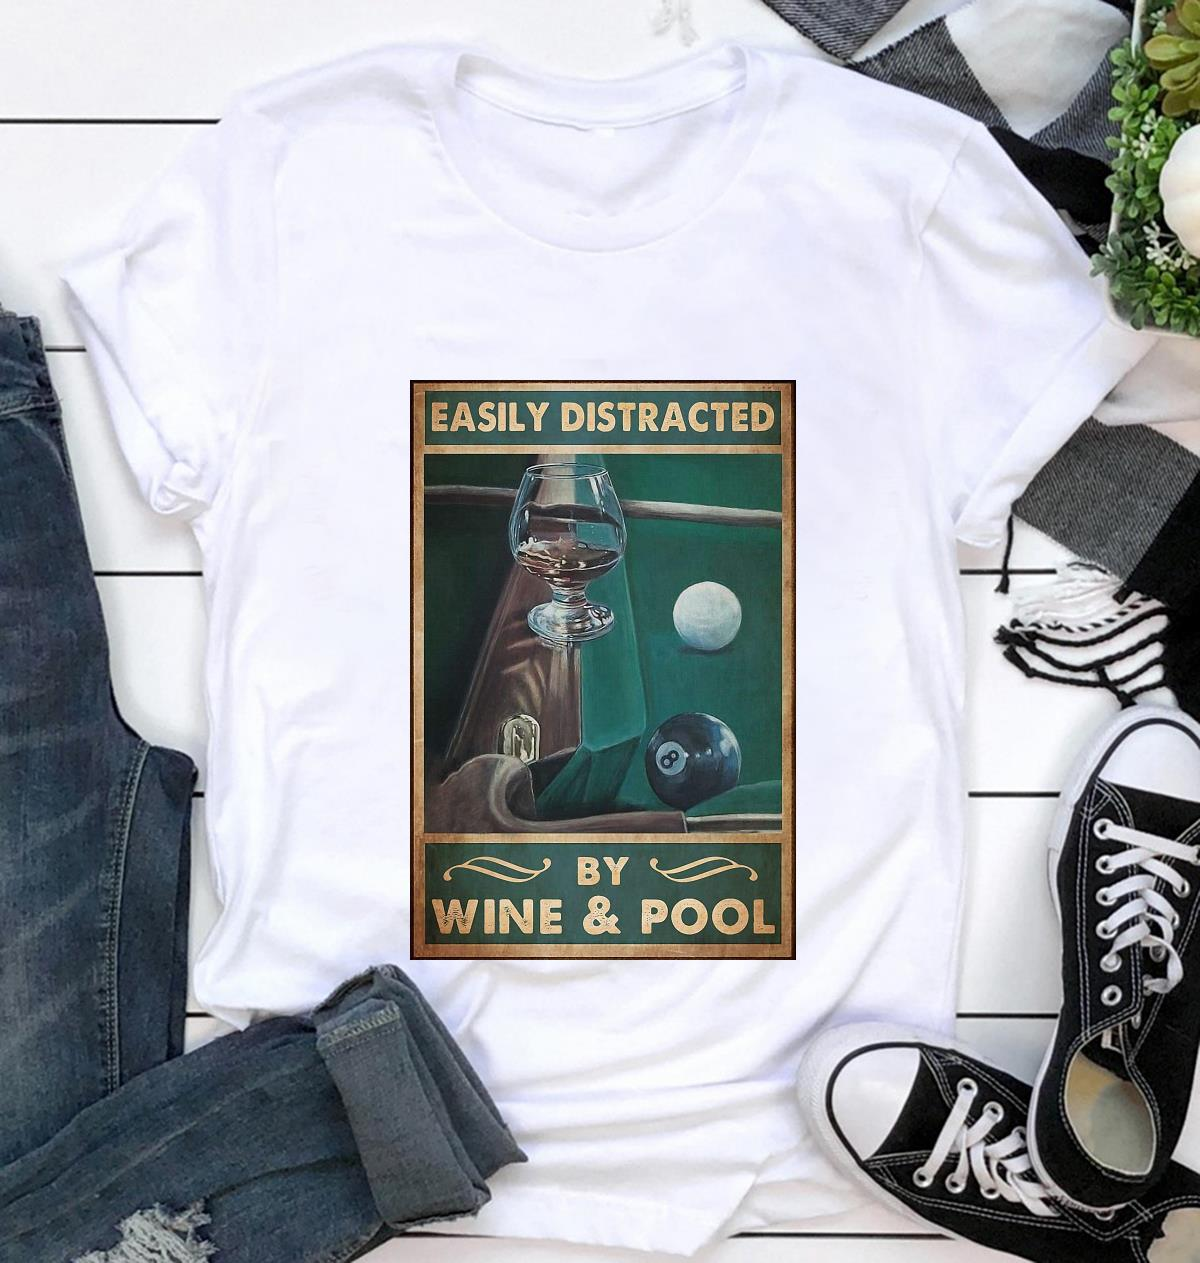 Easily distracted by wine and pool poster canvas t-shirt